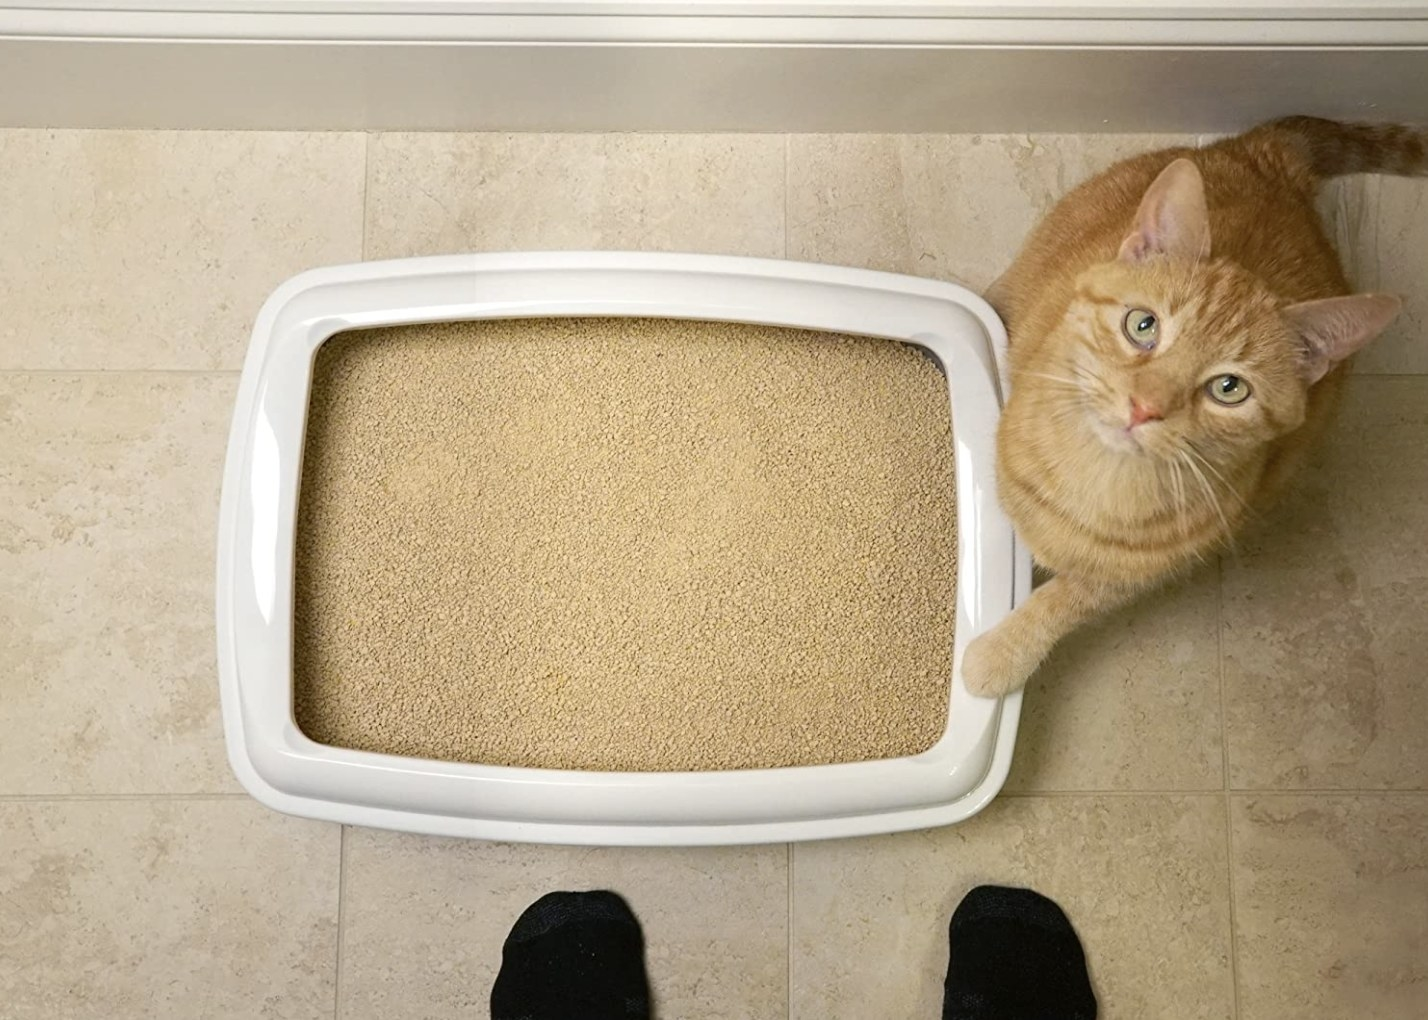 an orange tabby cat next to a litter box on the floor